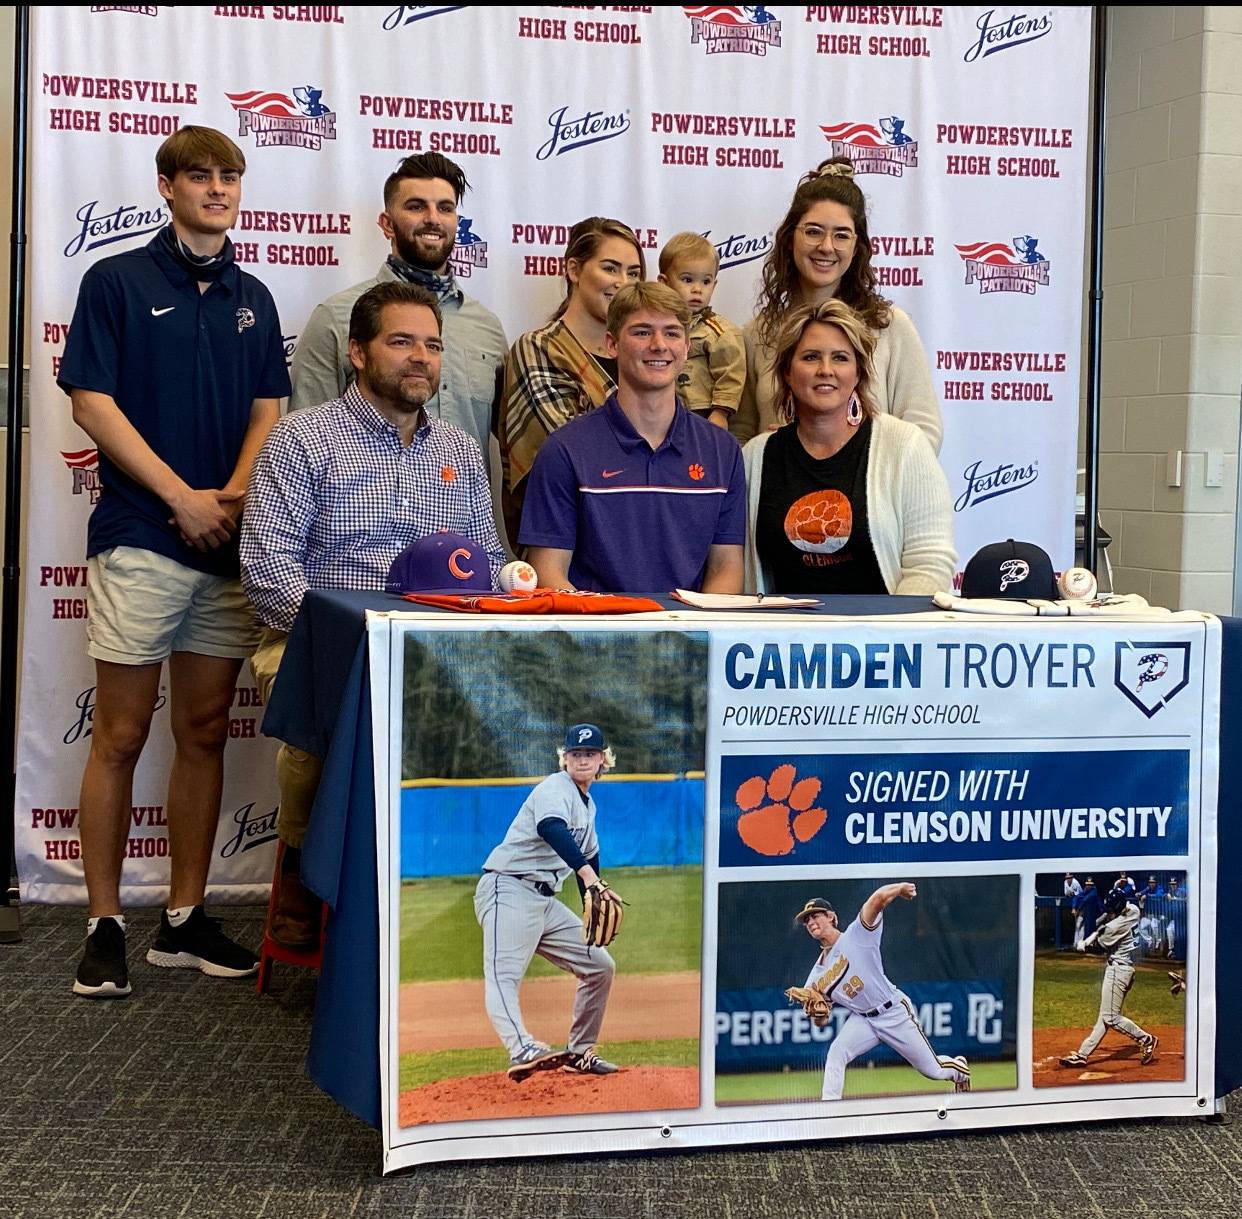 Congratulations Camden Troyer on Signing with Clemson!